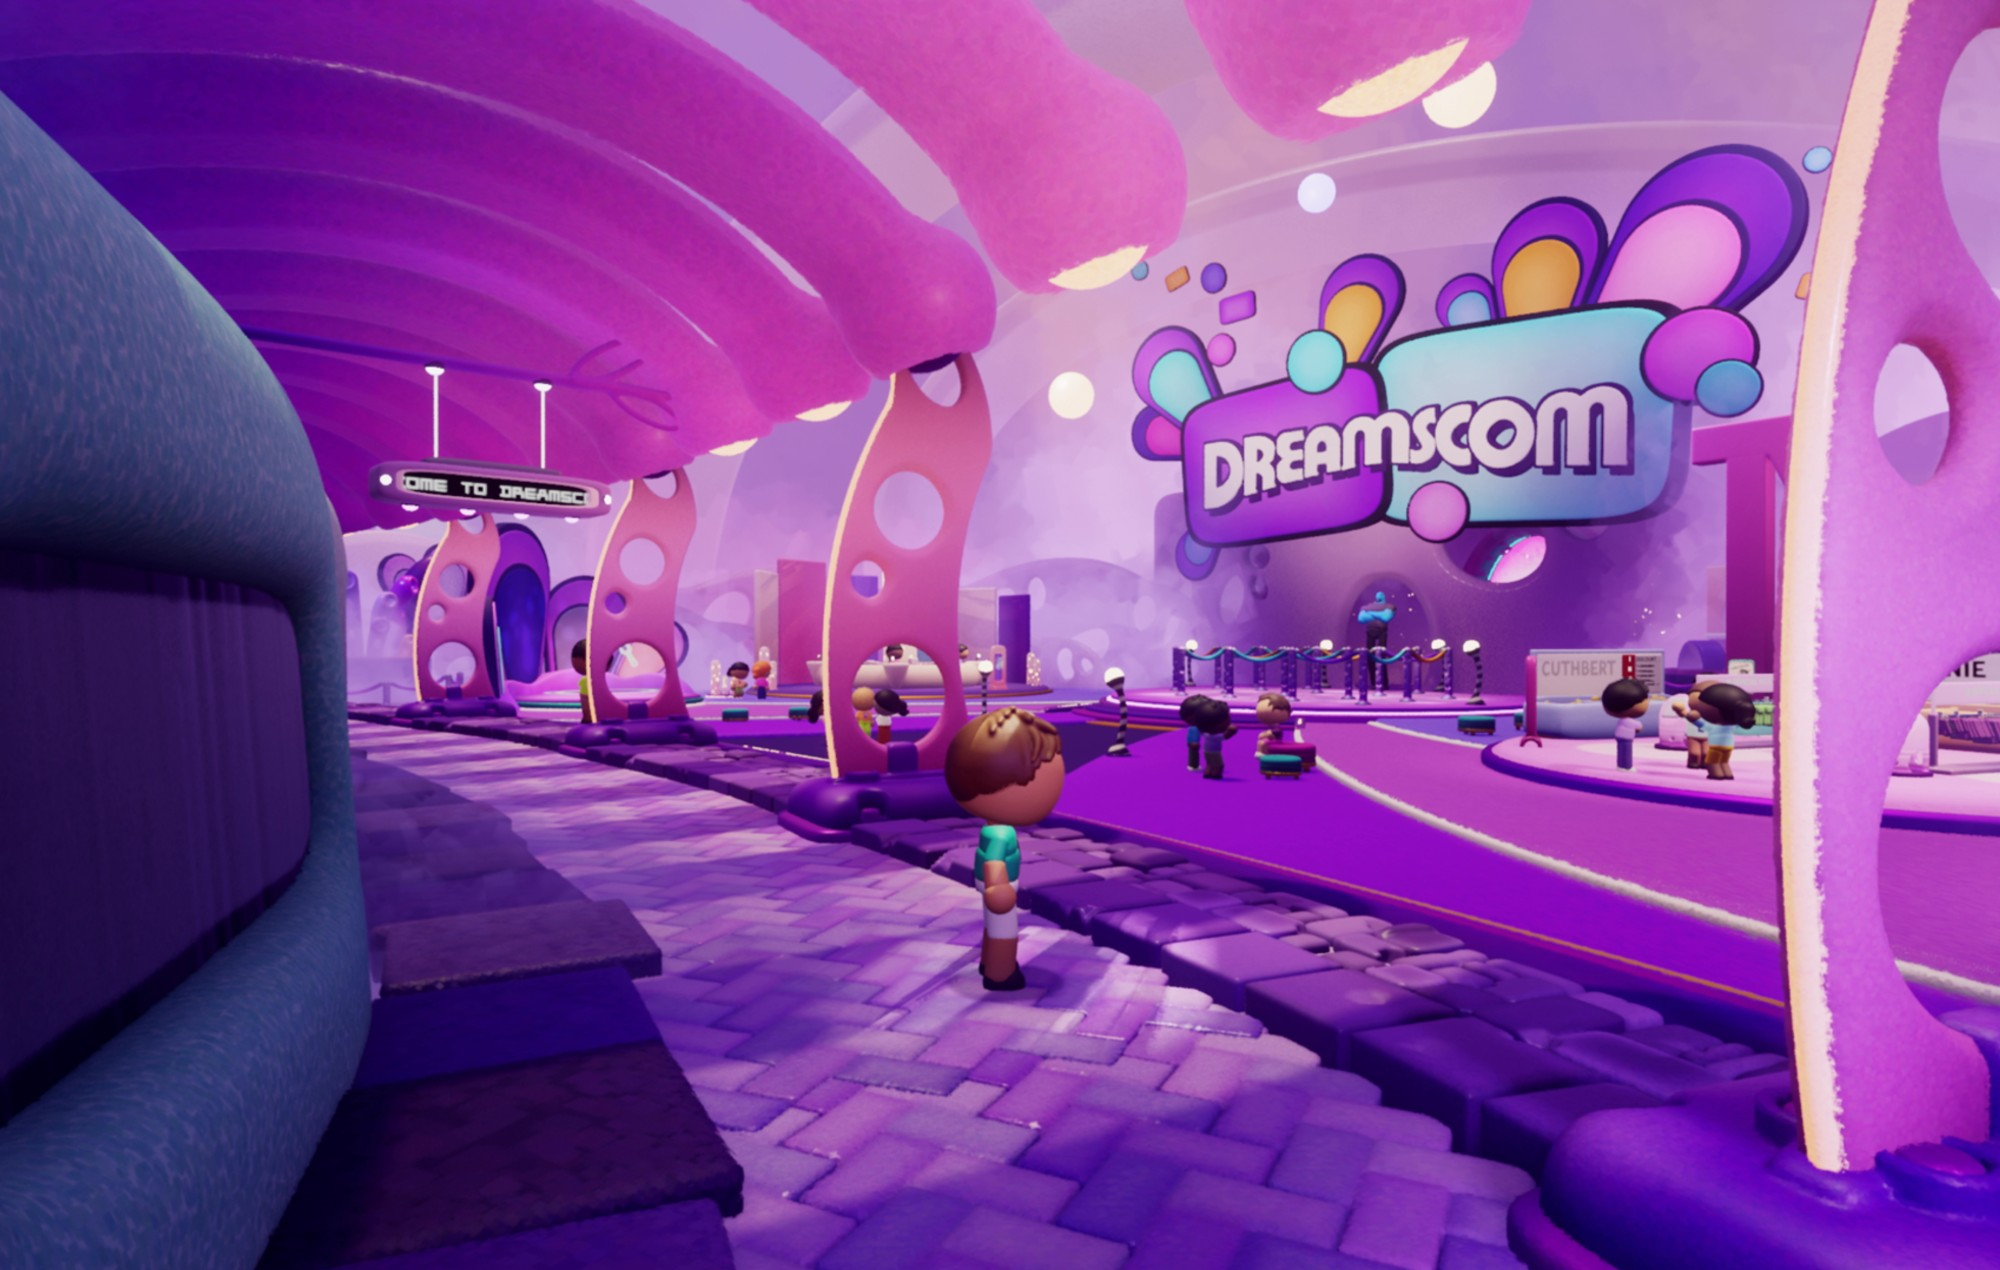 DreamsCom 2021 is live in 'Dreams' with two new original games